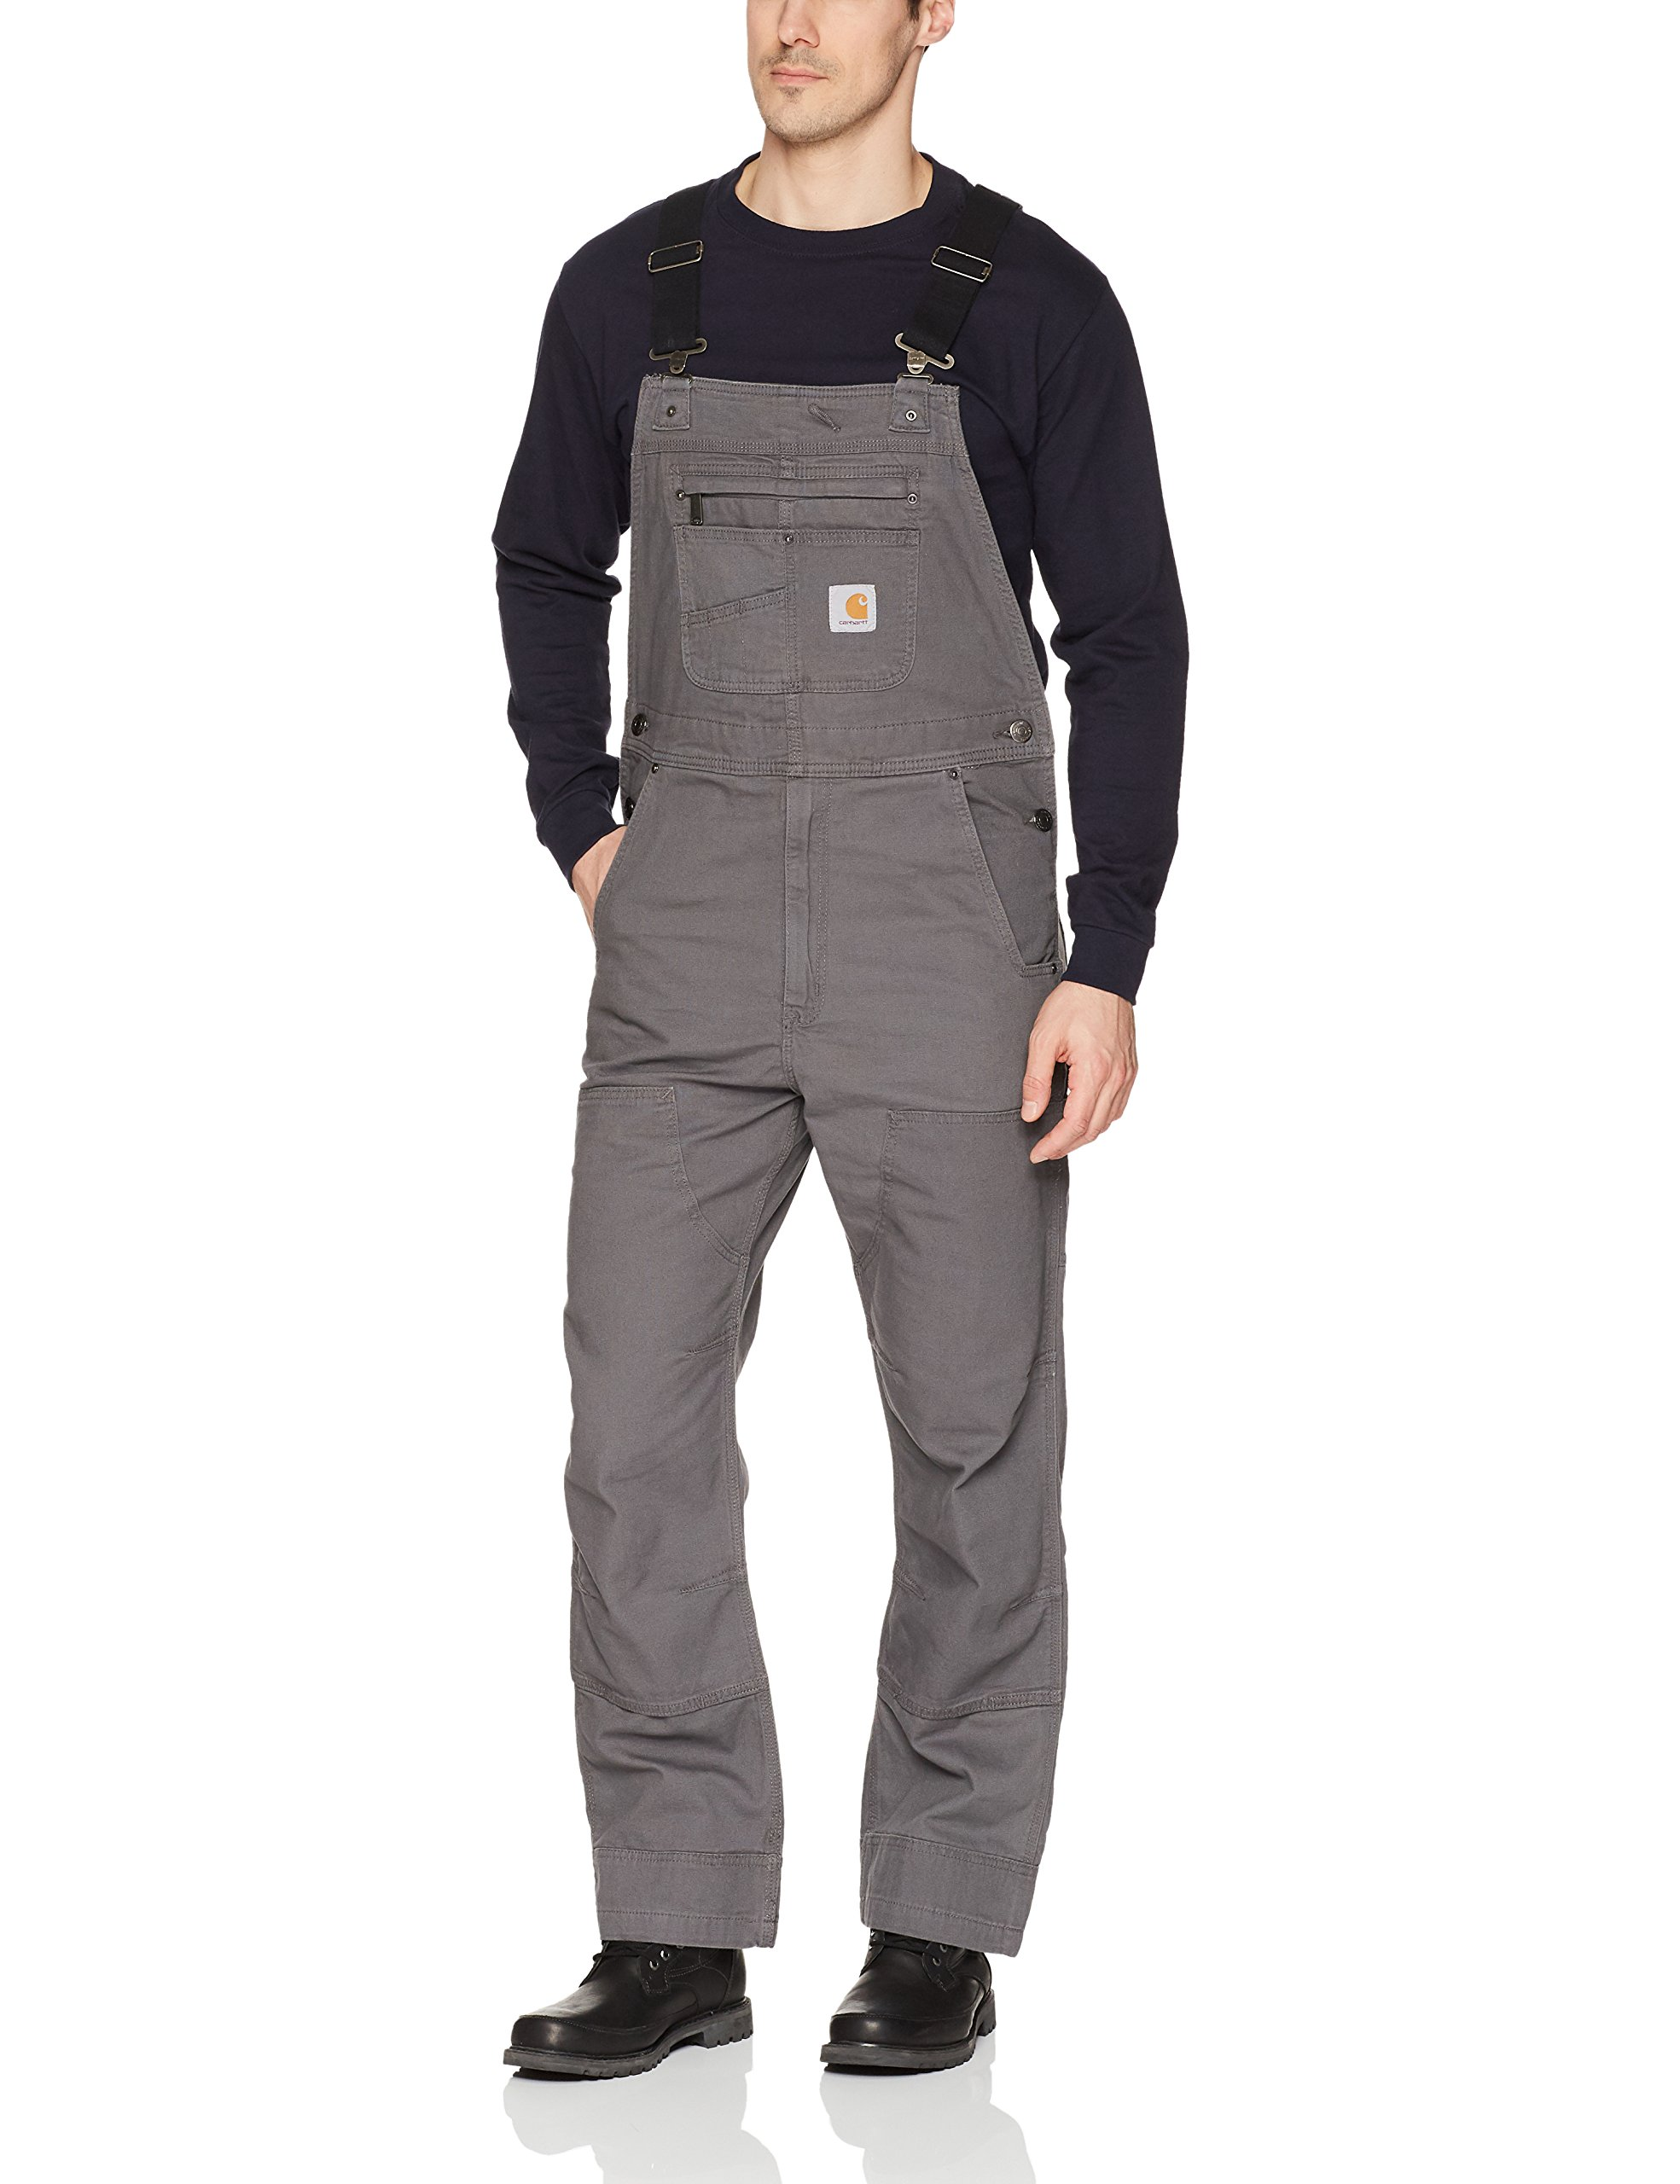 Carhartt Men's Rugged Flex Relaxed Fit Canvas Bib Overall